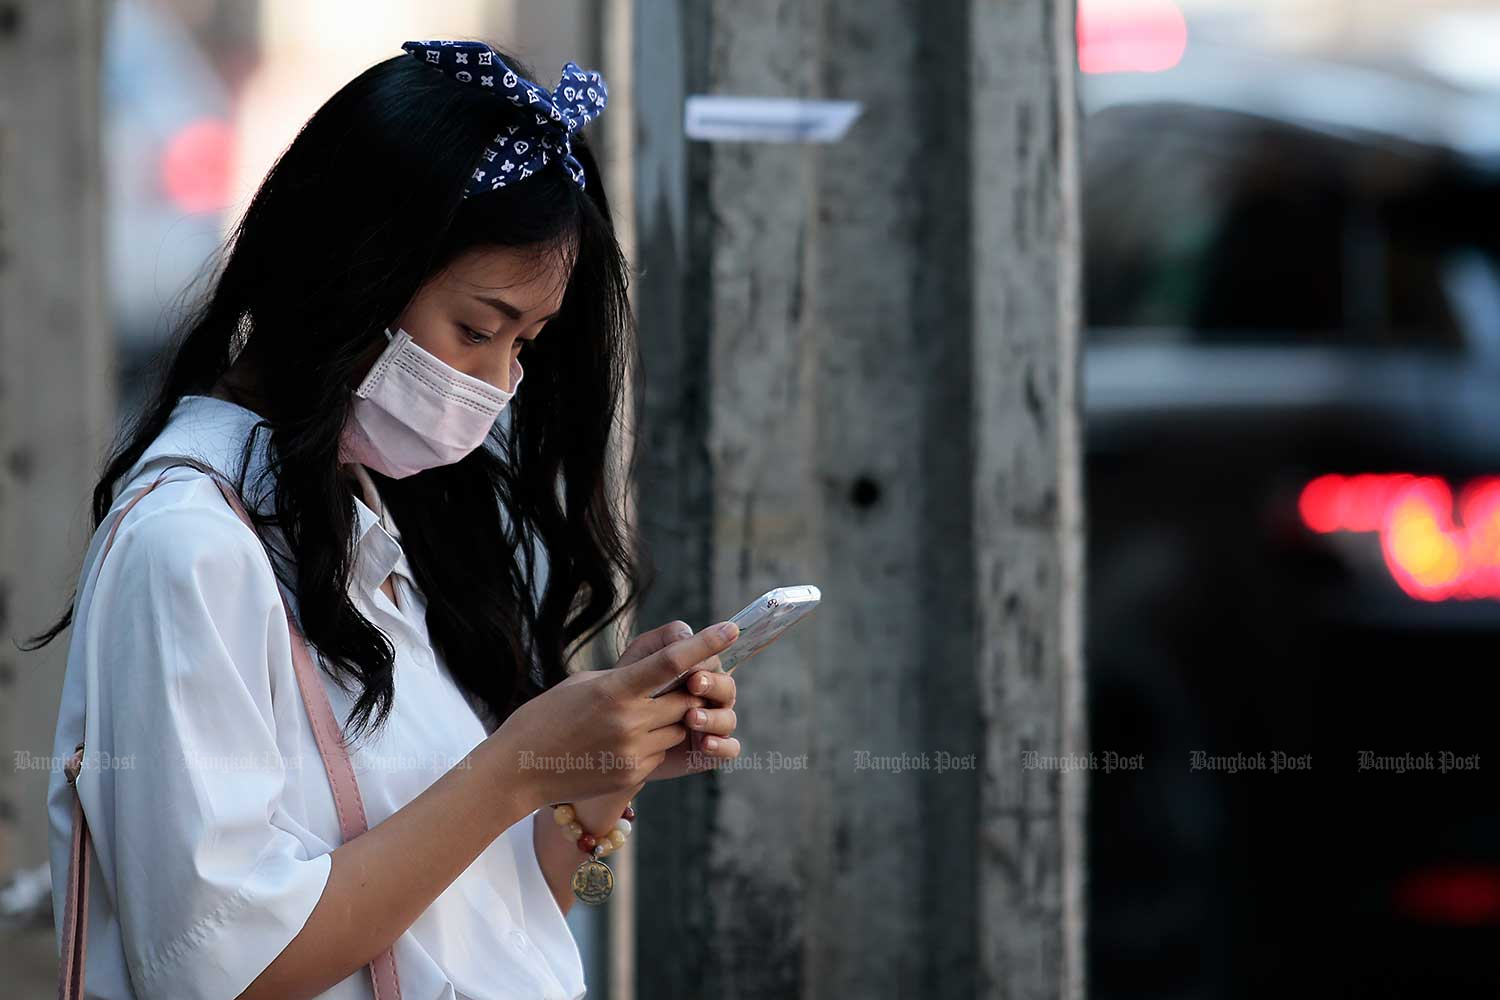 A student checks her smartphone. (Photo by Patipat Janthong)